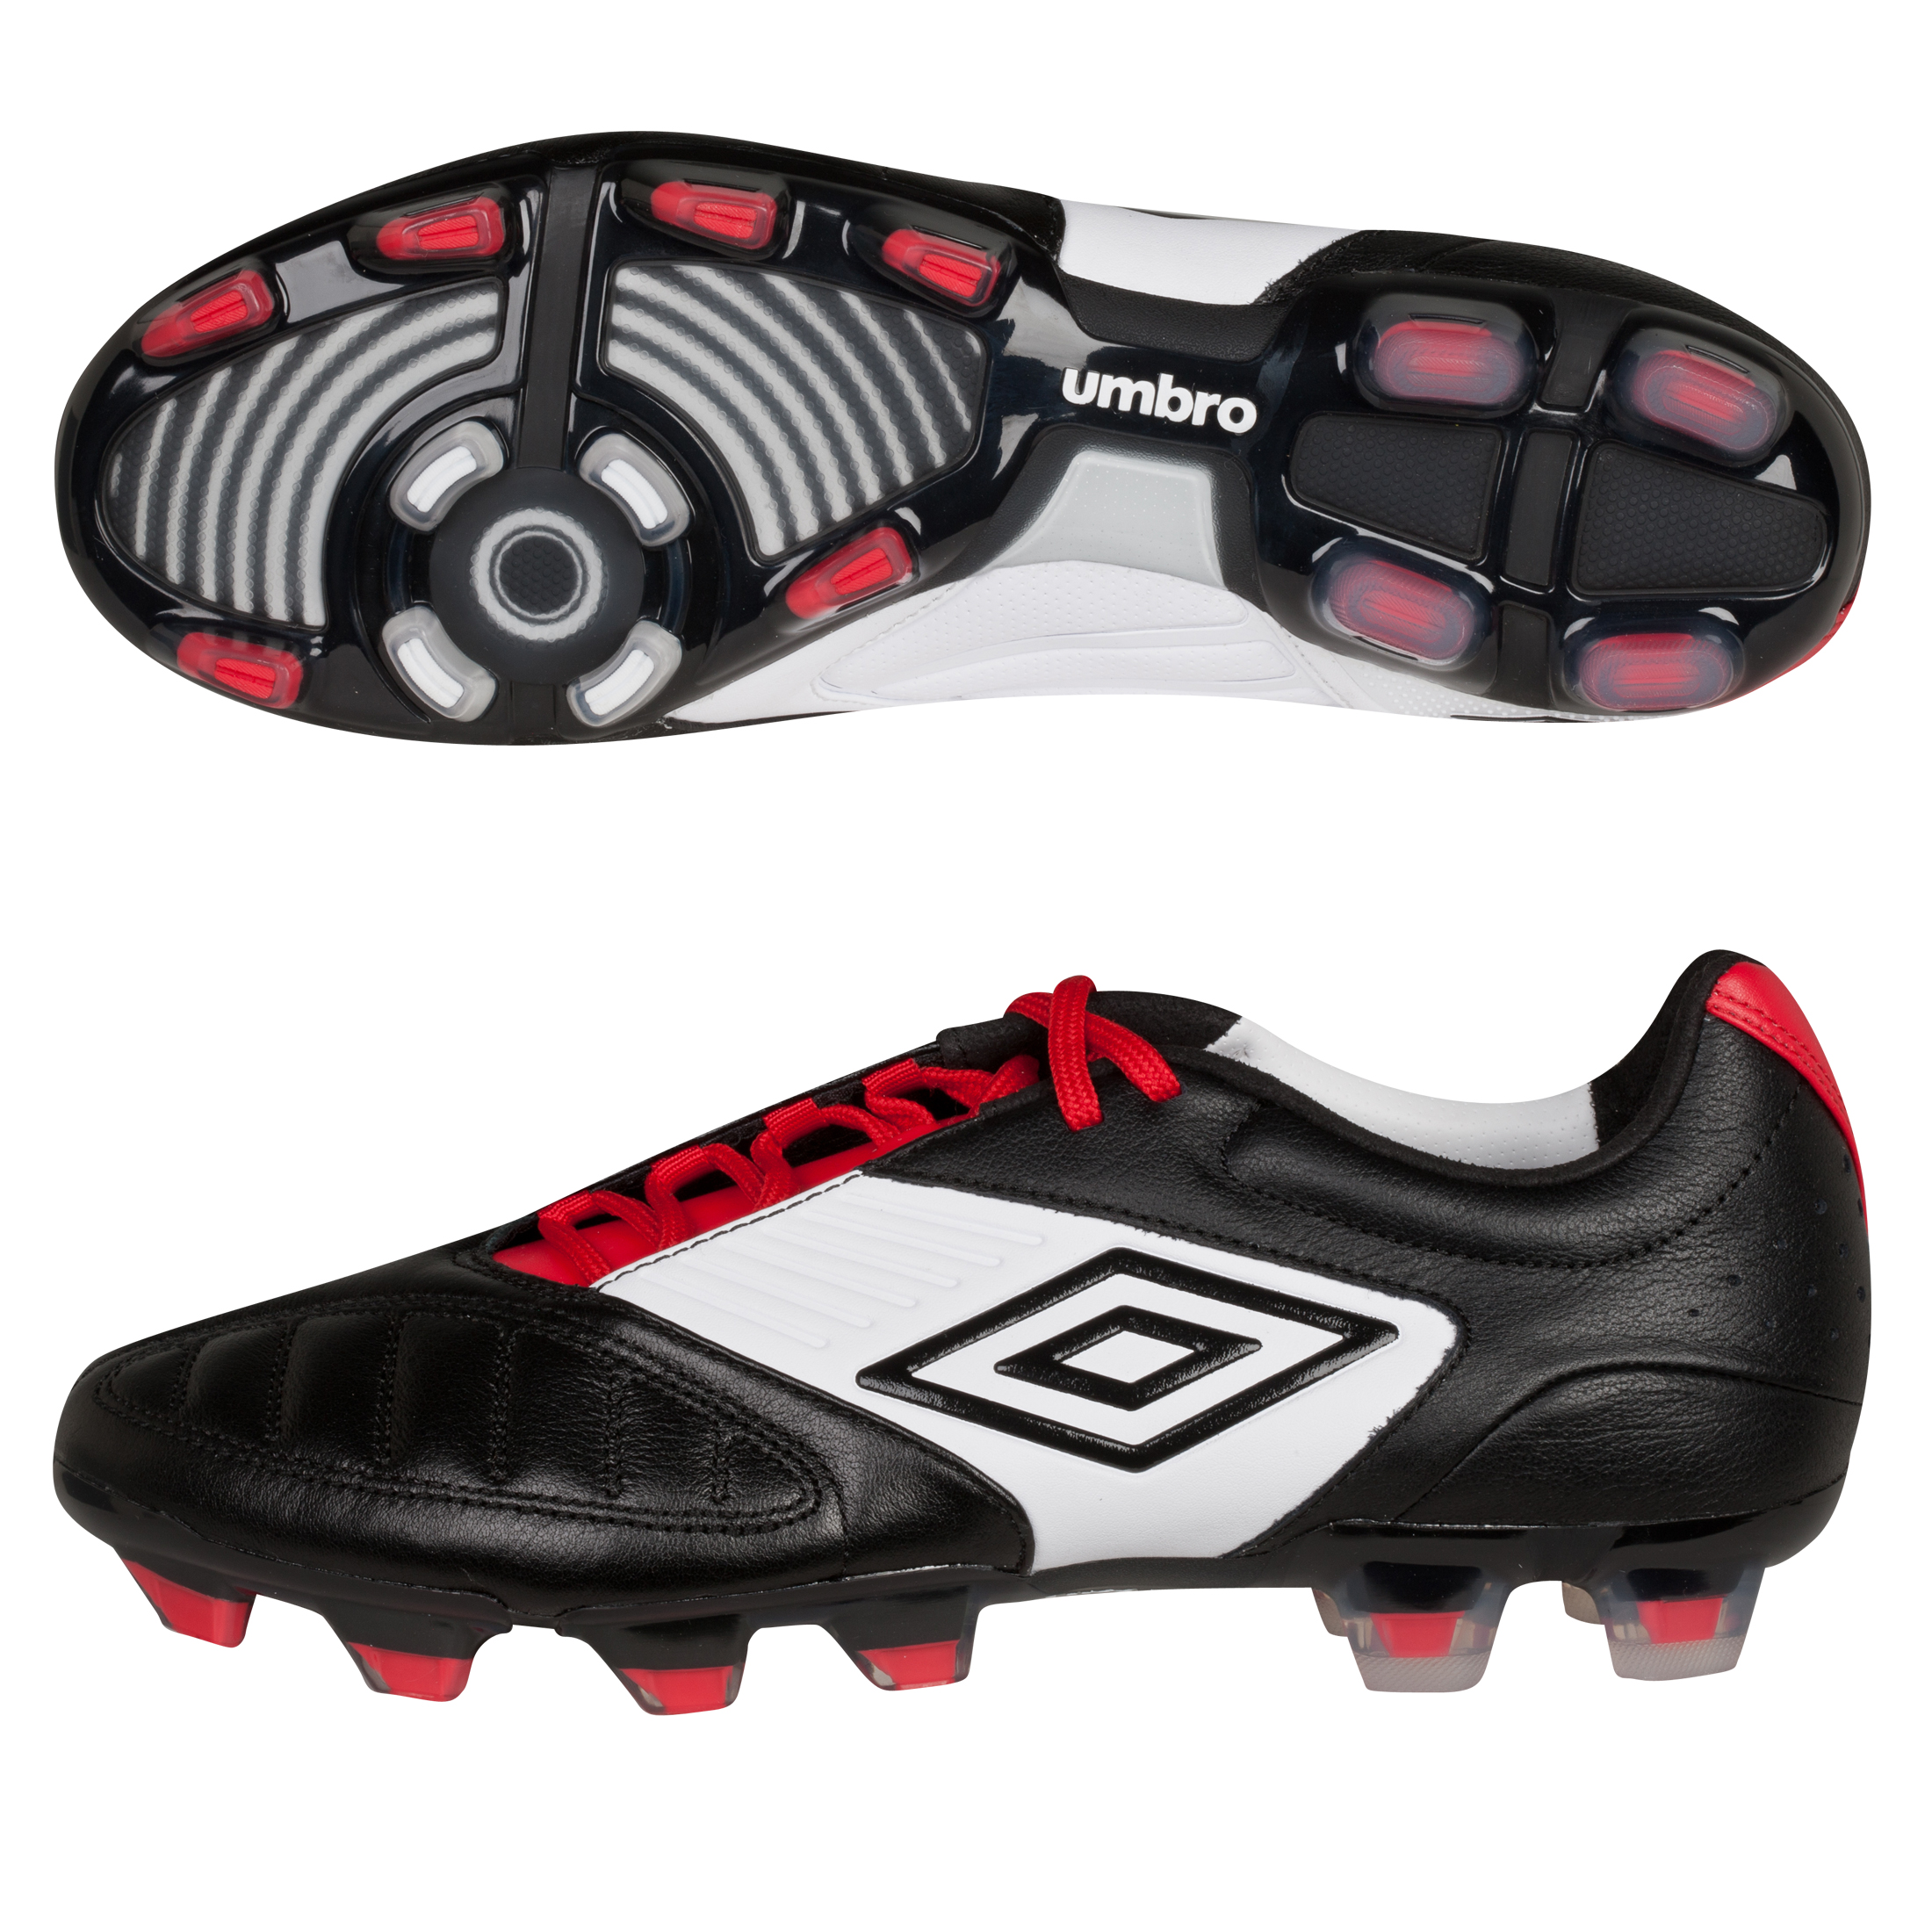 Geometra Pro FG Black/White/True Red